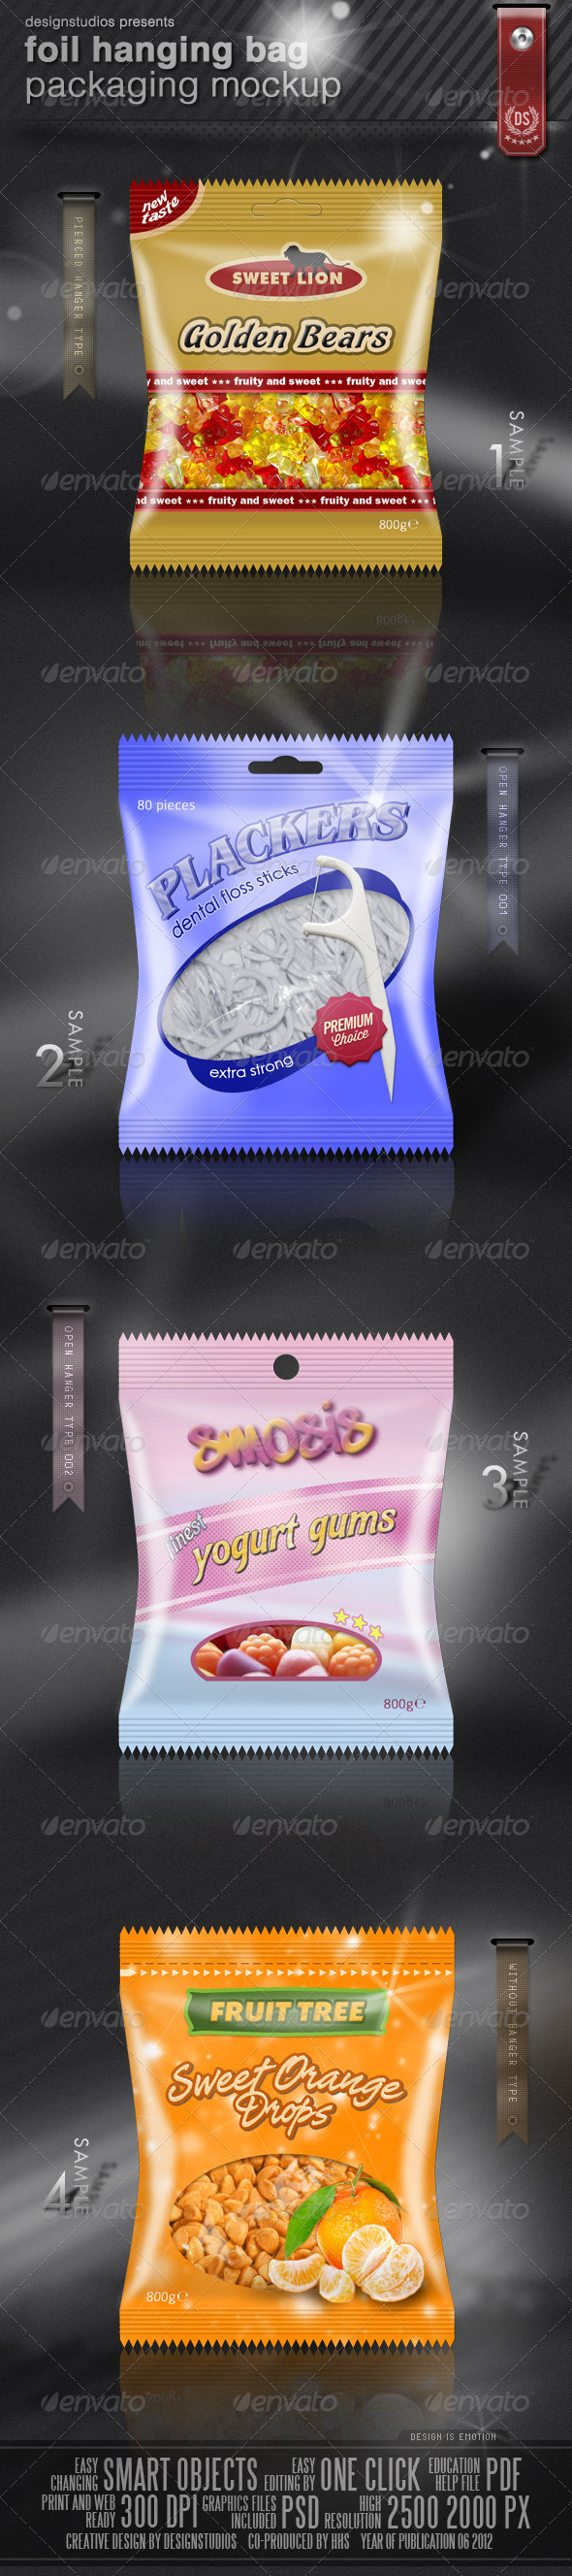 Foil Hanging Bag Packaging Mock-Up